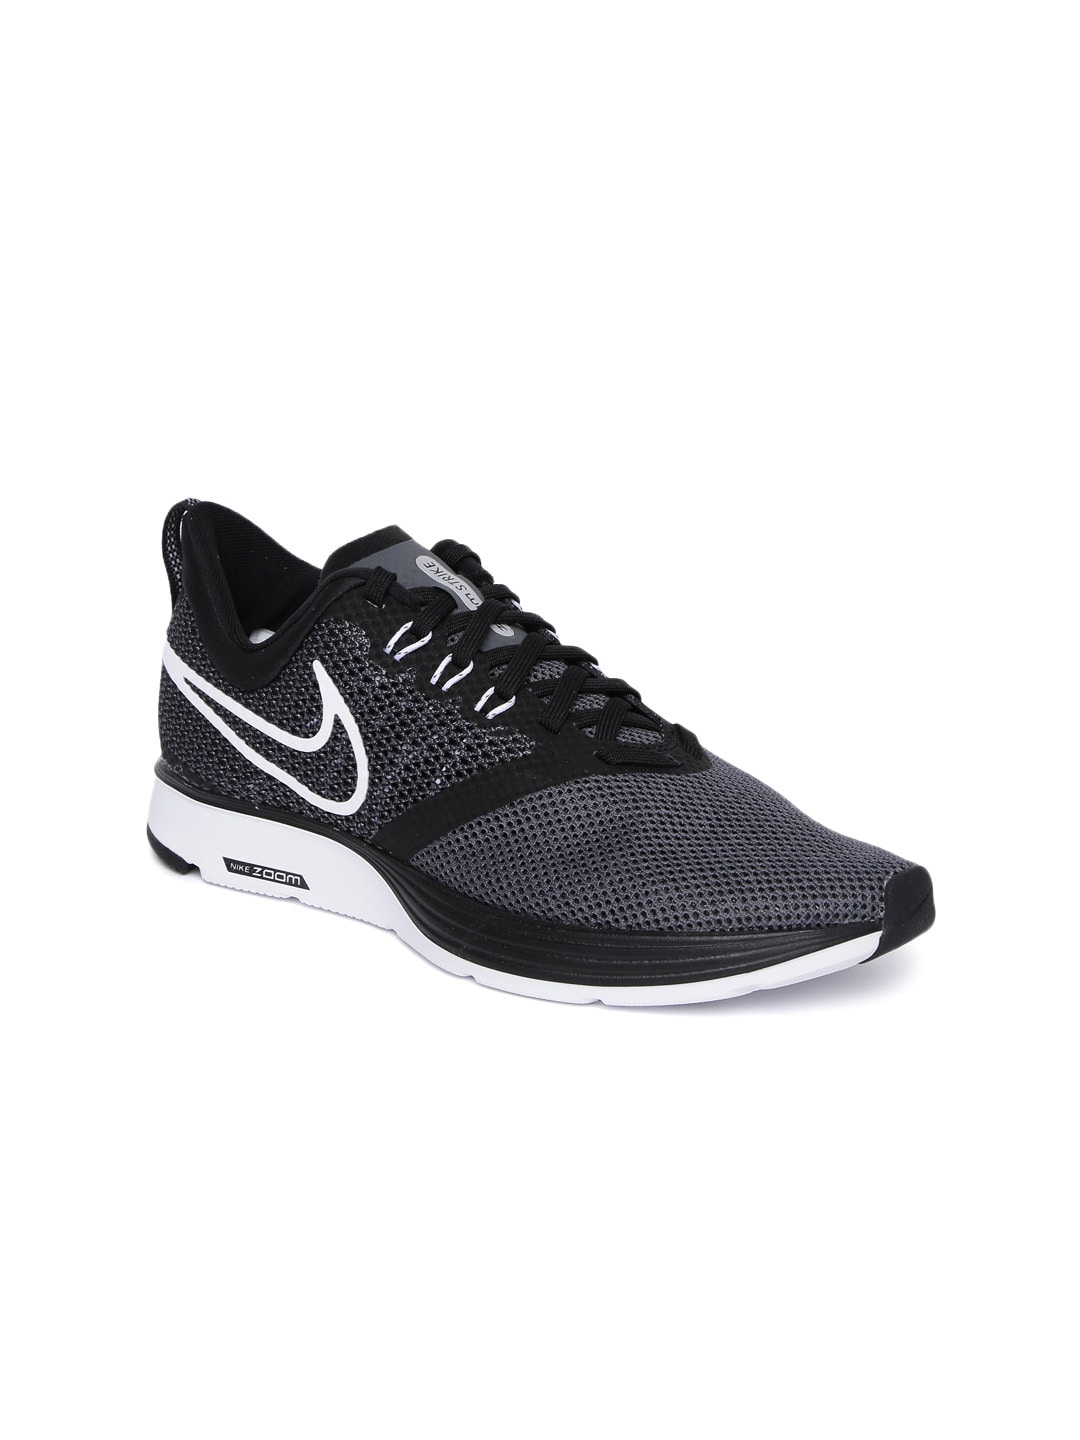 Nike Shoes - Buy Nike Shoes for Men   Women Online  b13c7ce57c